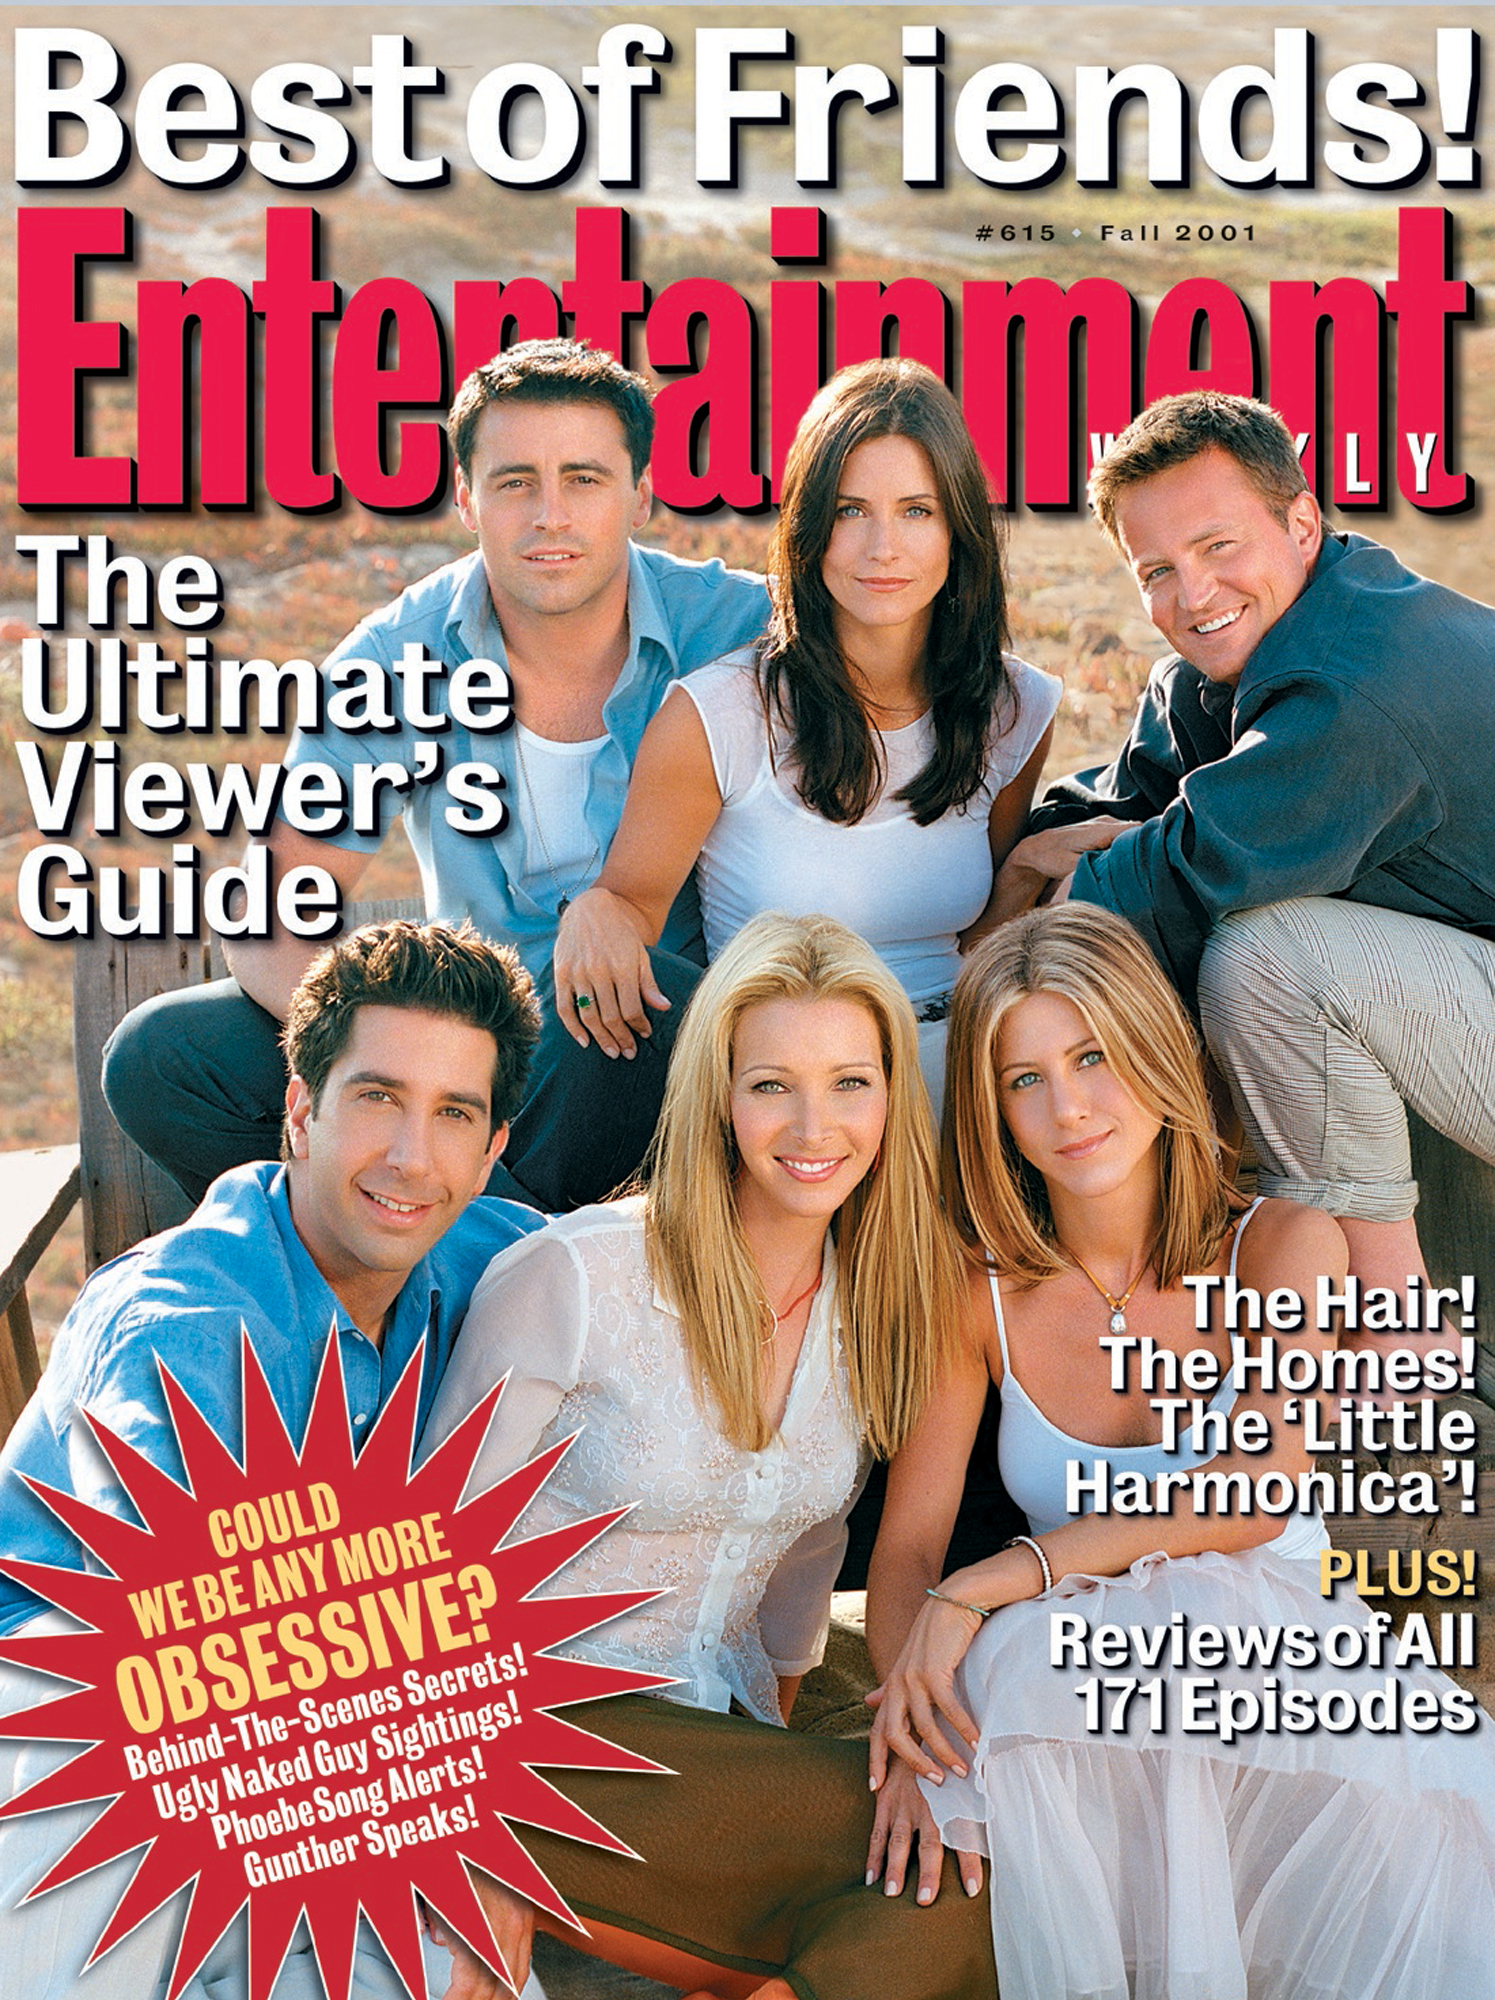 Entertainment Weekly coverIssue# 615 - 9/15/2001Friends